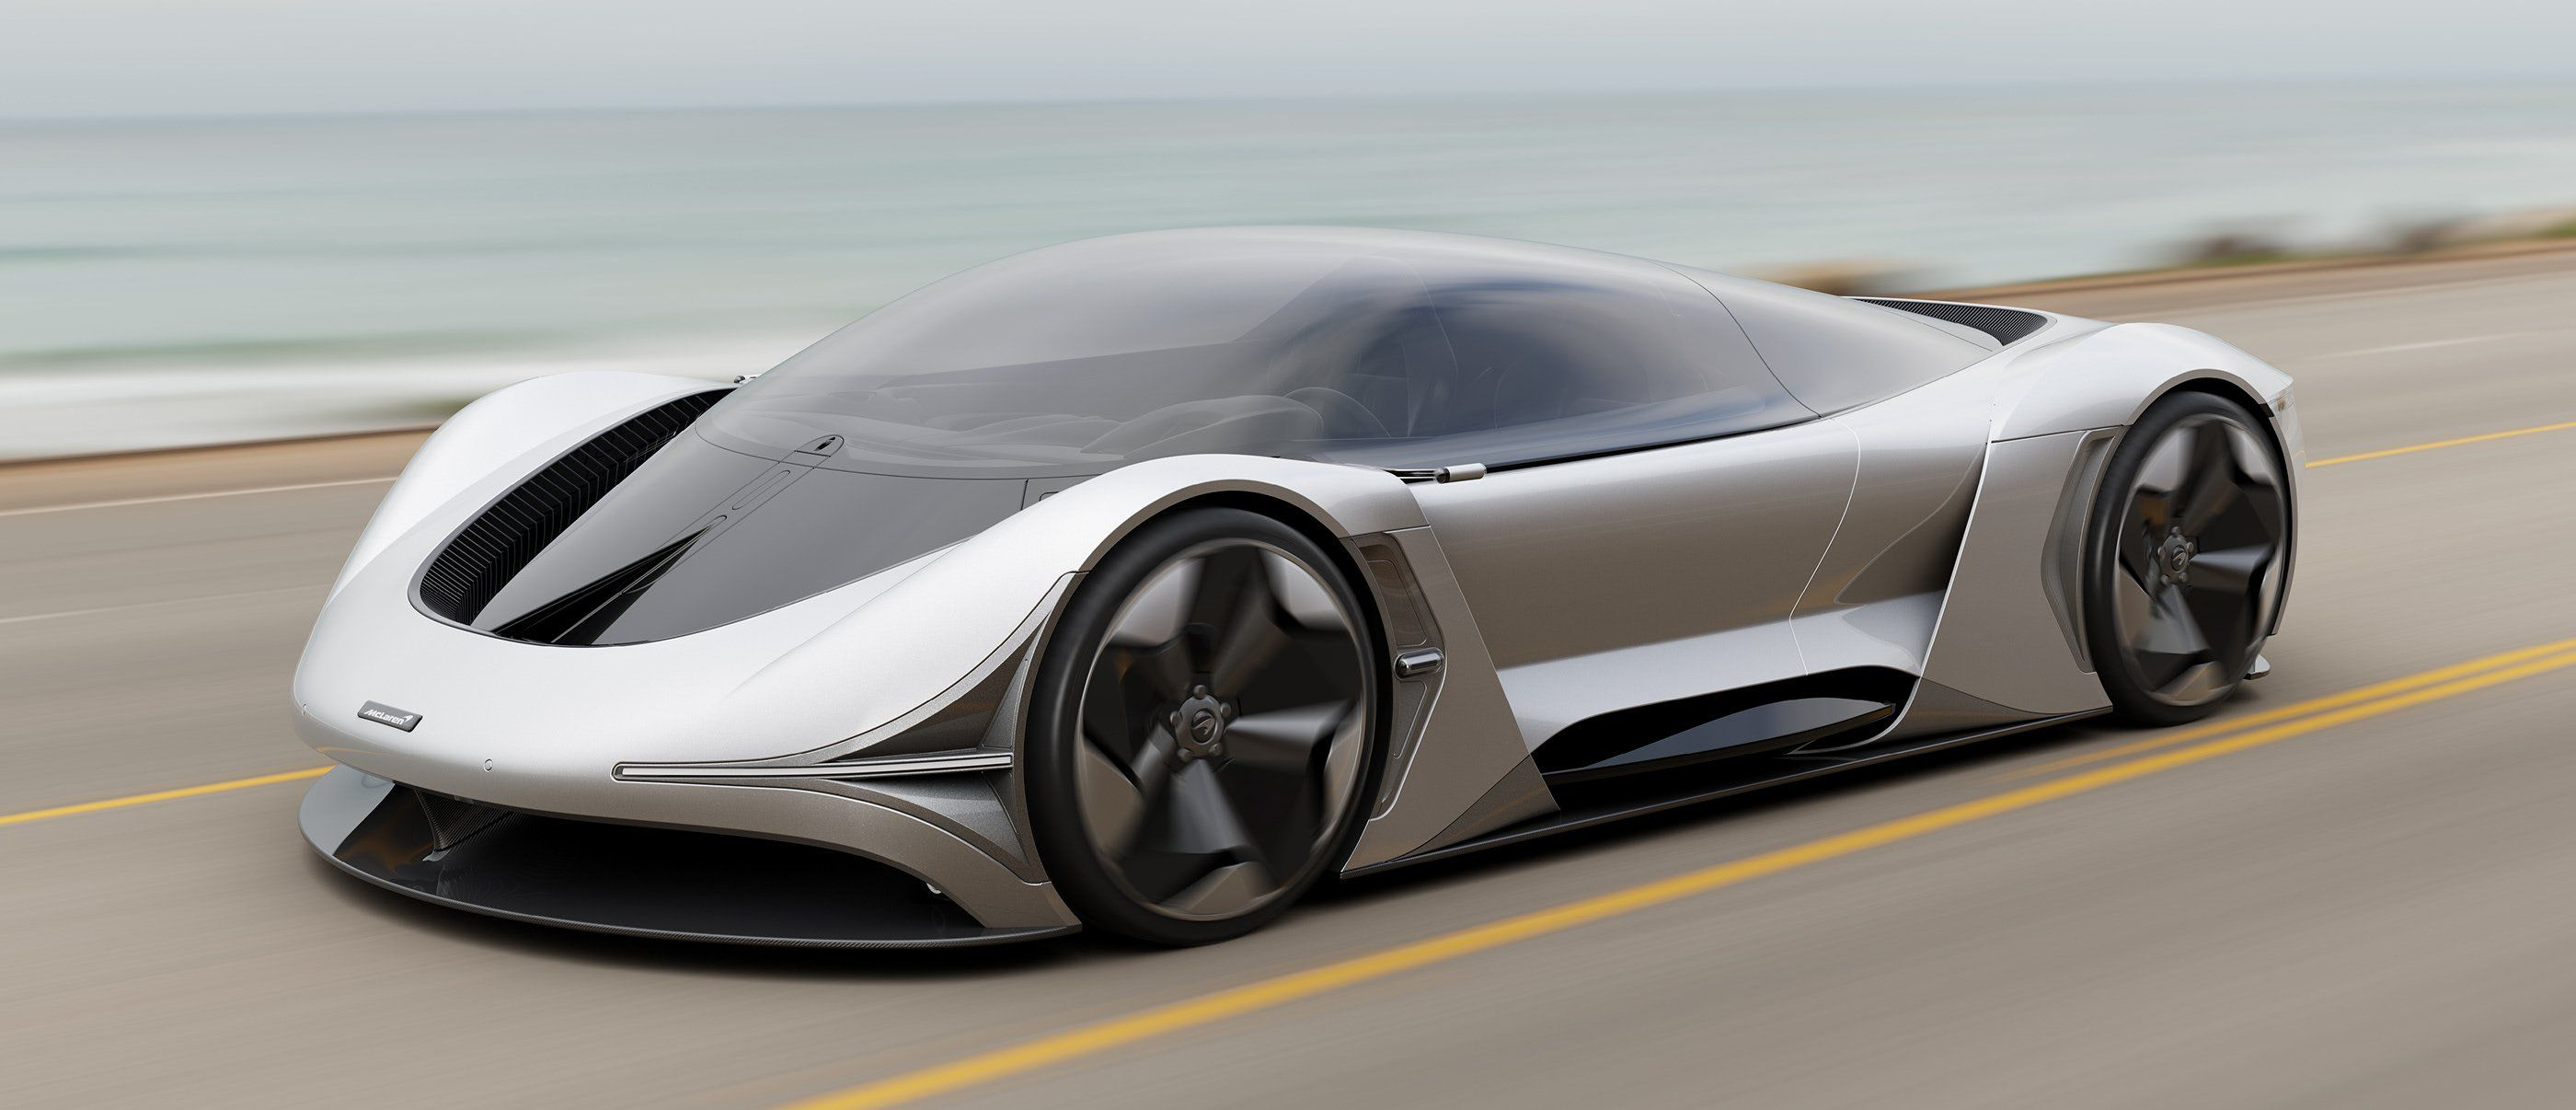 Taking Panoramic Sunroofs To A New Level Is This Mclaren Concept E Zero Electric Supercar Conceptualised For The In 2020 With Images Automotive Design Luxury Motor Concept Design